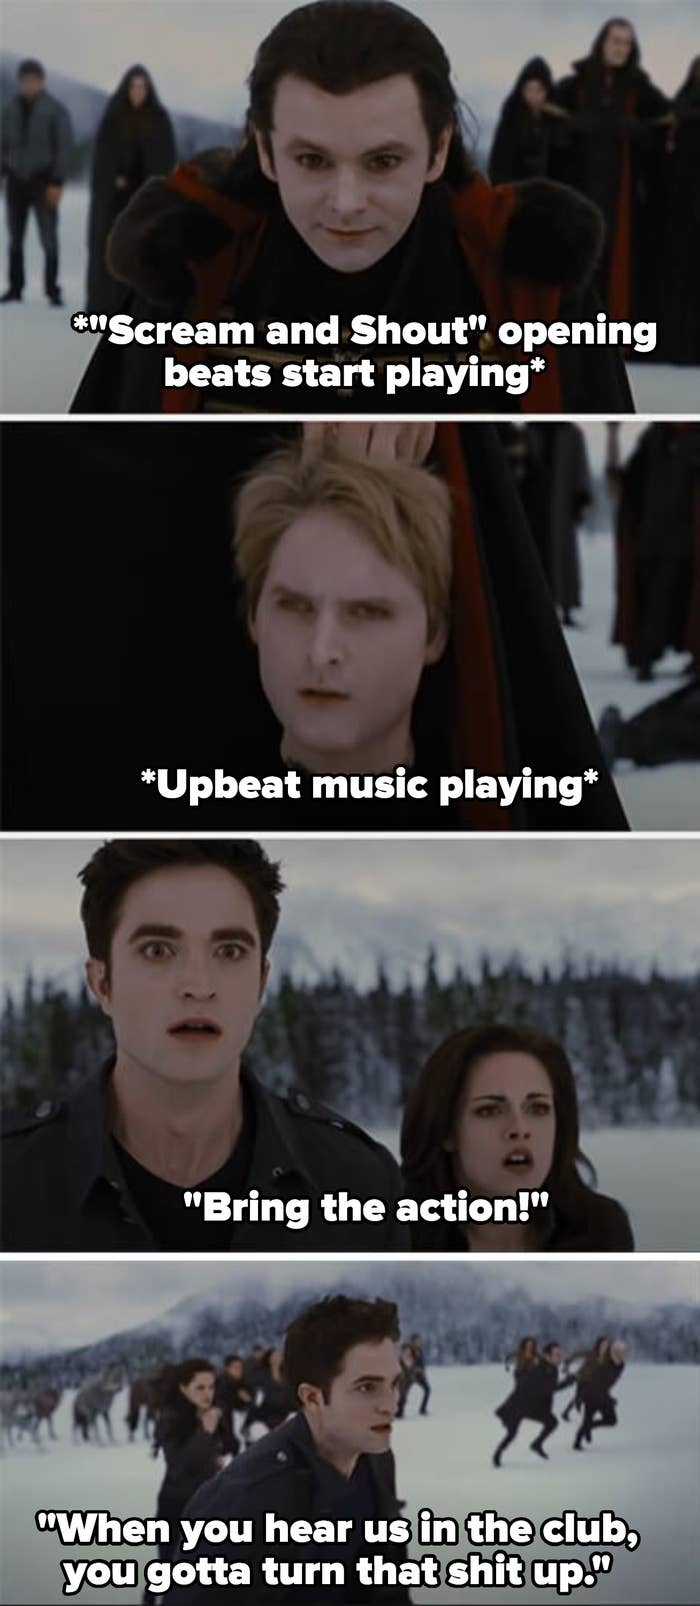 """As the Cullens see Carlisle's dismembered head, they look shocked and run to attack, as the song says """"Bring the action! When you hear us in the club, you gotta turn that shit up"""""""